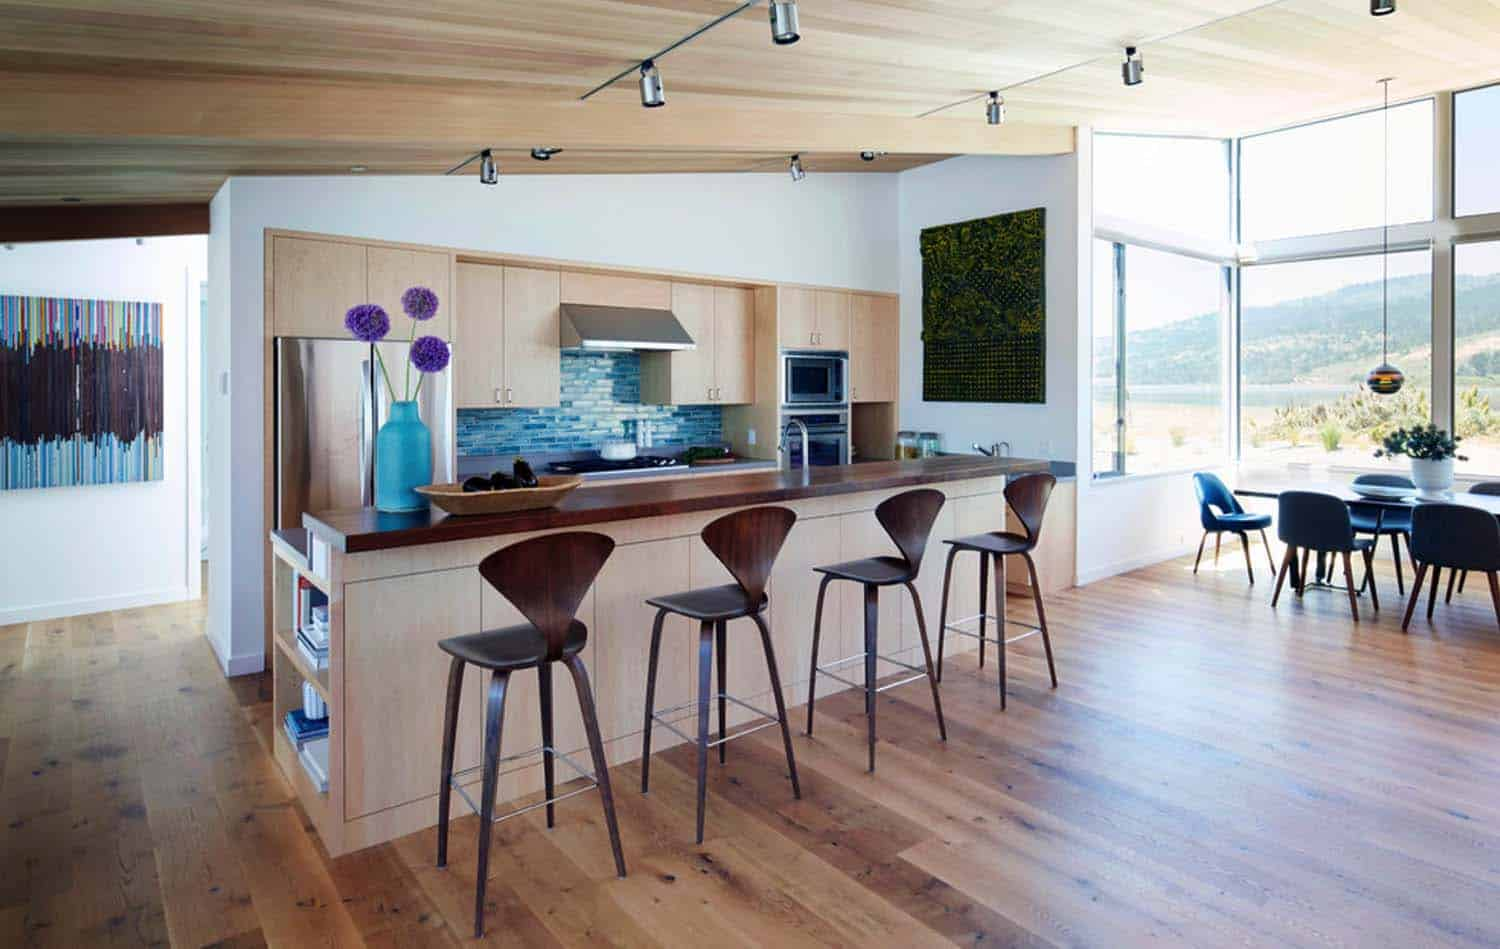 stinson-beach-lagoon-residence-turnbull-griffin-haesloop-09-1-kindesign